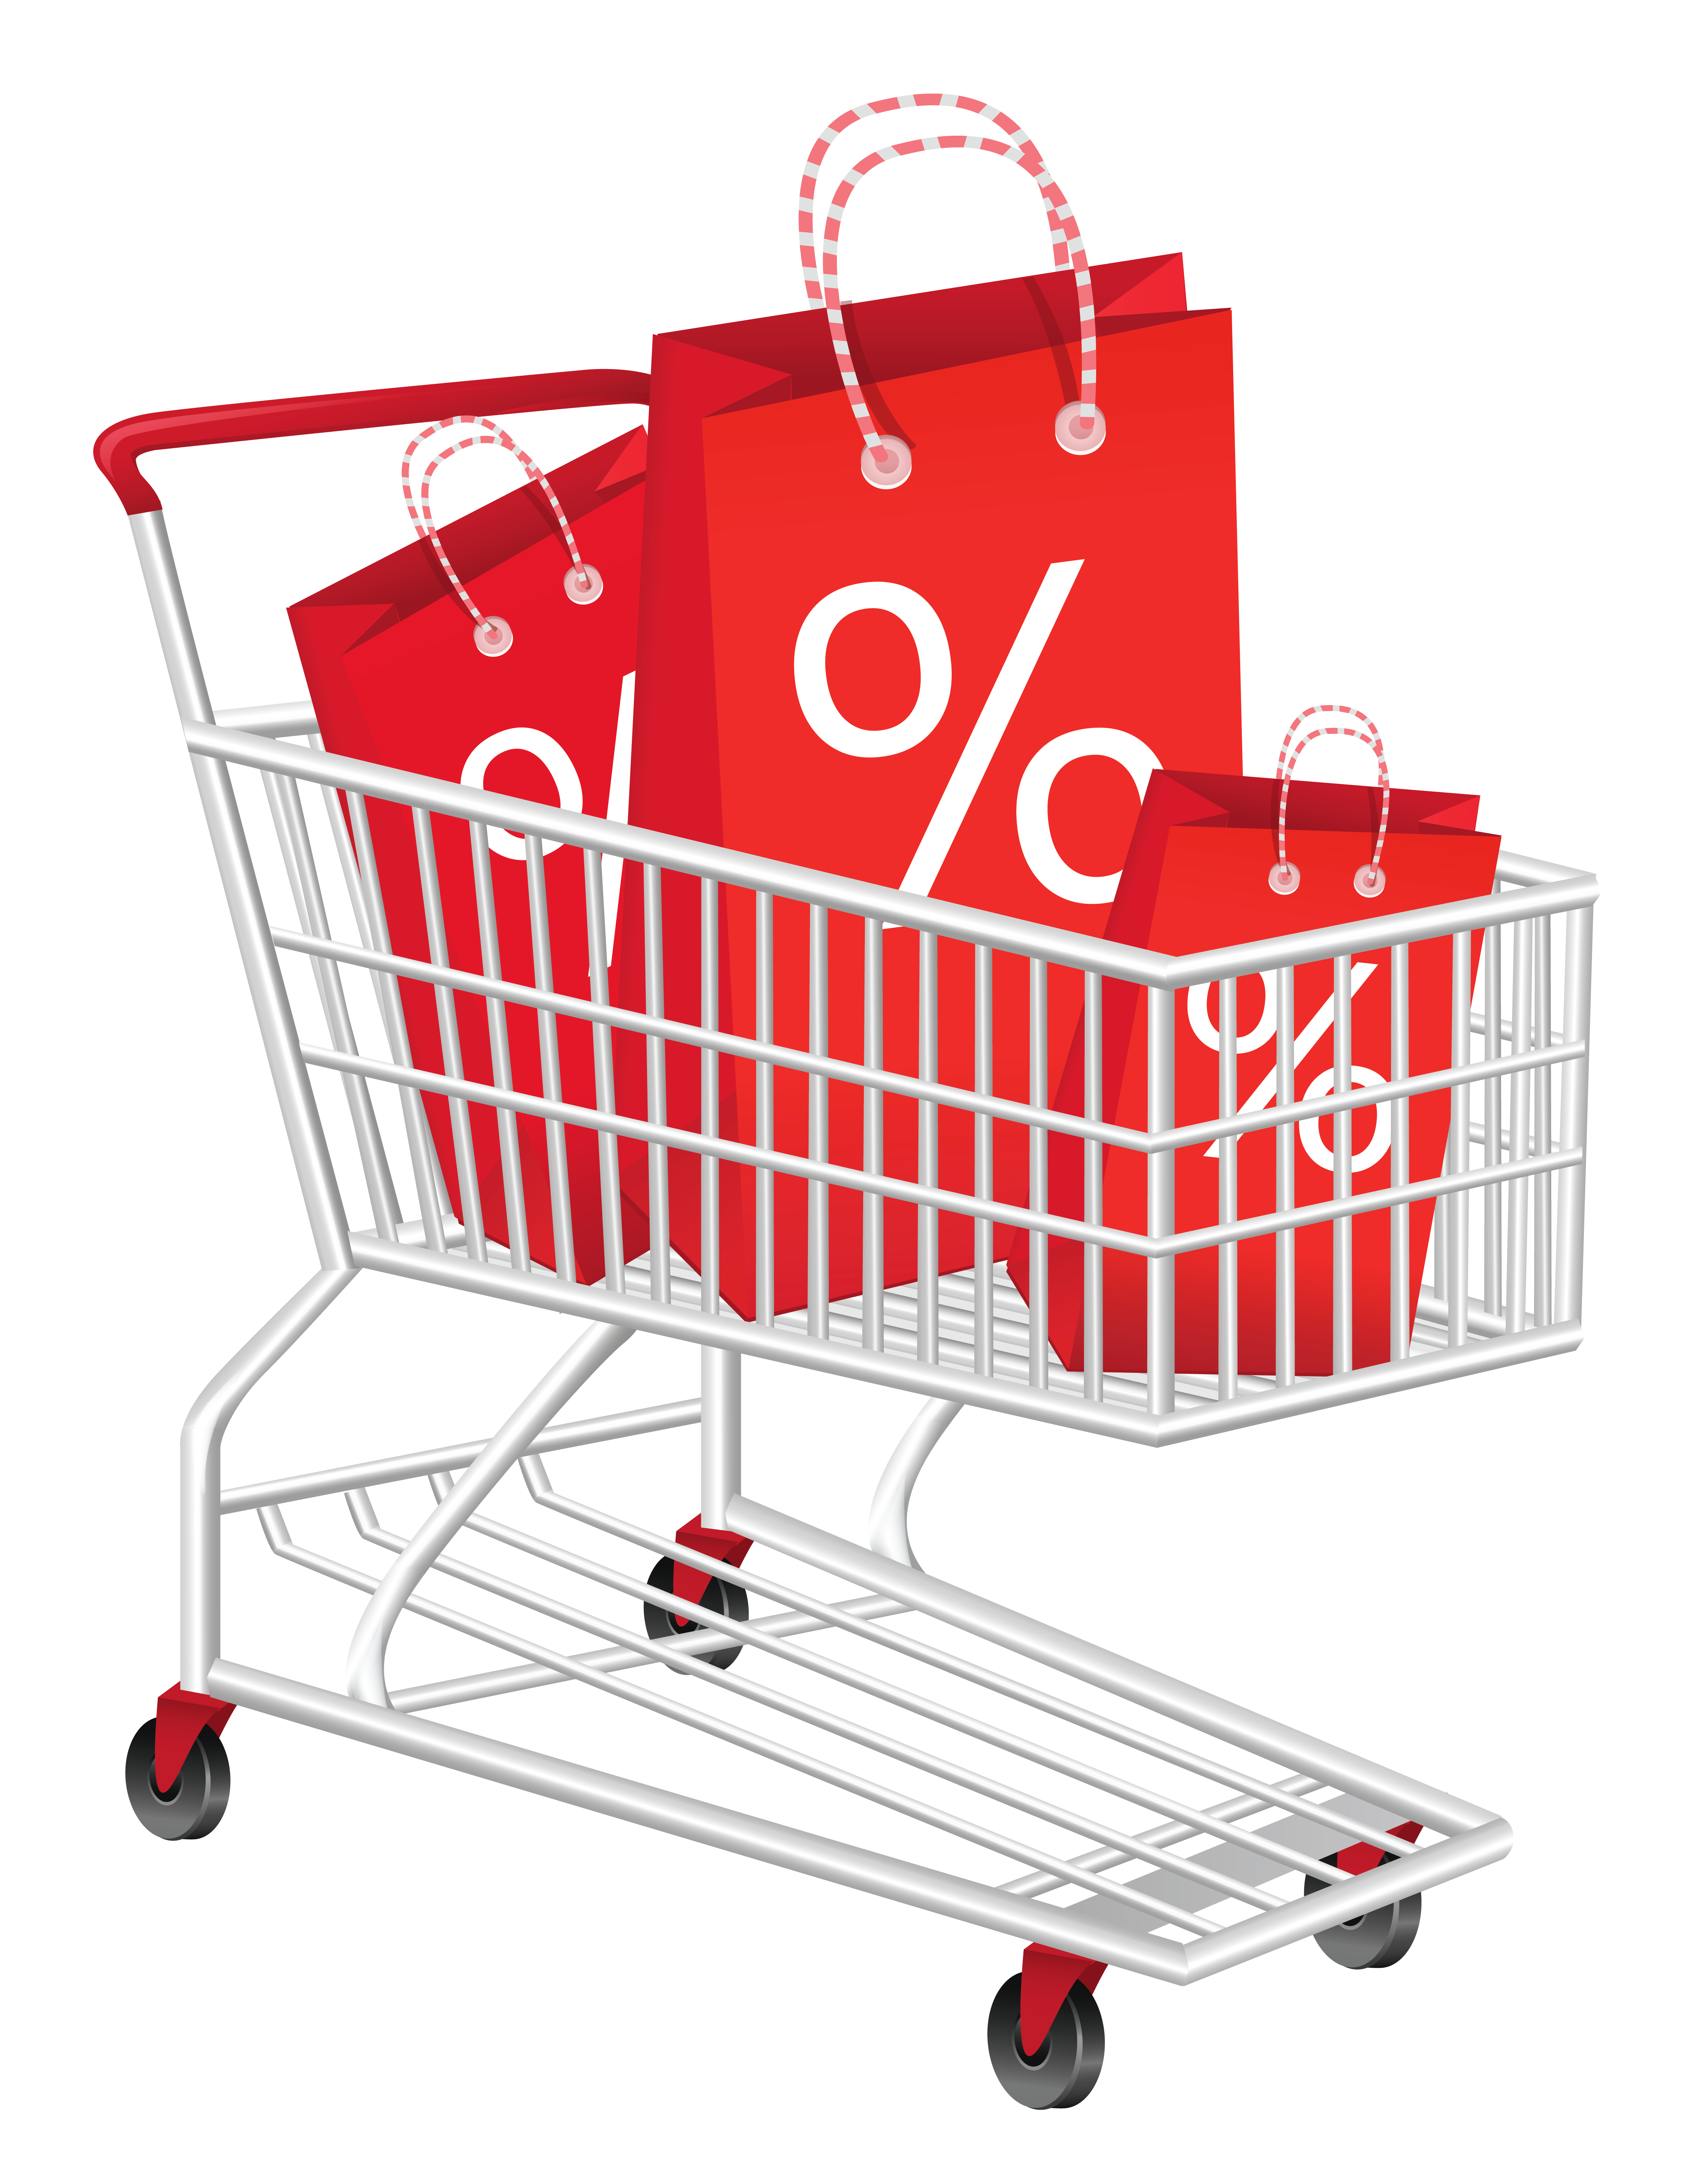 graphic transparent stock Shopping cart at getdrawings. Supermarket clipart man.